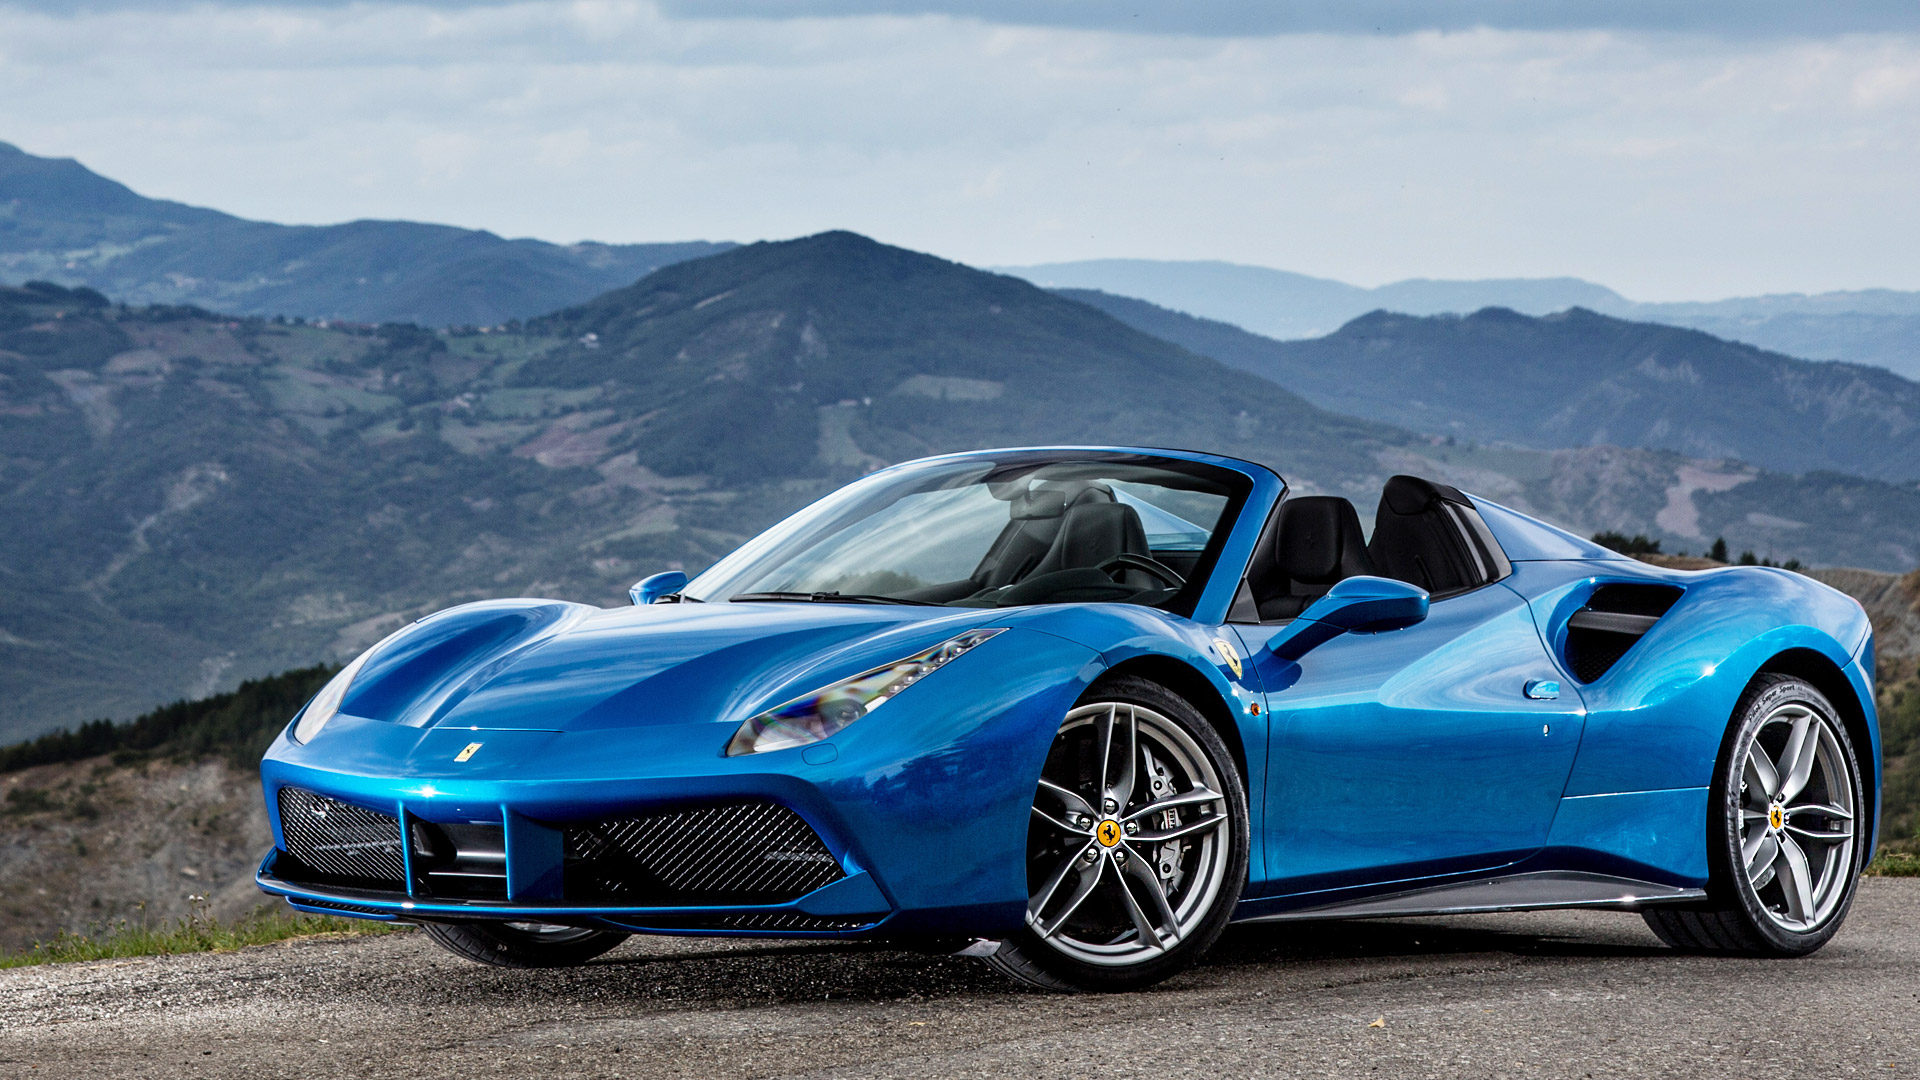 Ferrari 488 2017 Spider Exterior Car Photos Overdrive